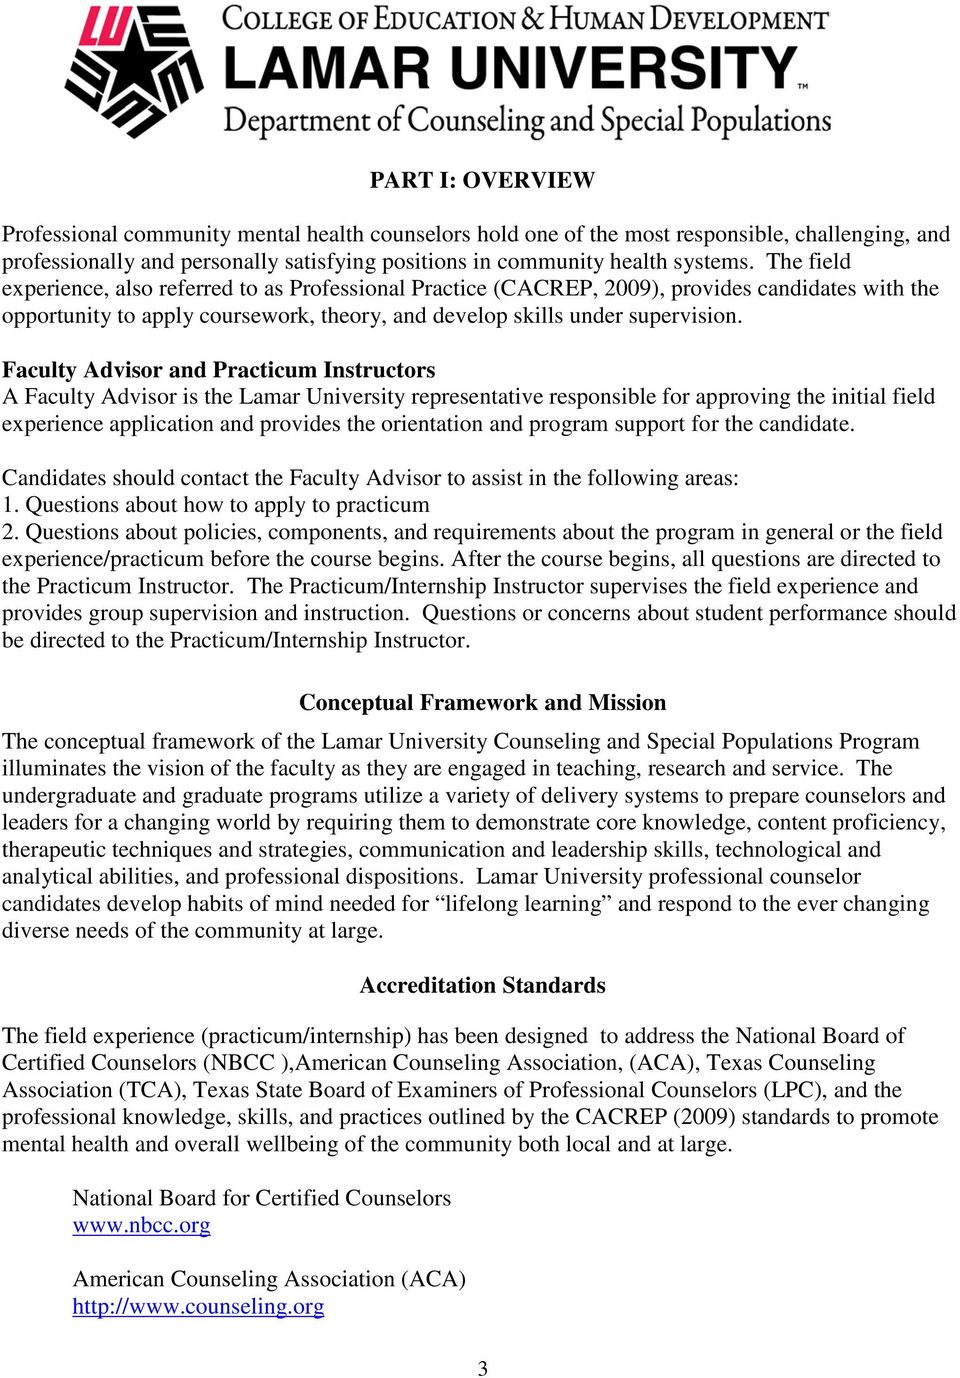 Faculty Advisor and Practicum Instructors A Faculty Advisor is the Lamar University representative responsible for approving the initial field experience application and provides the orientation and